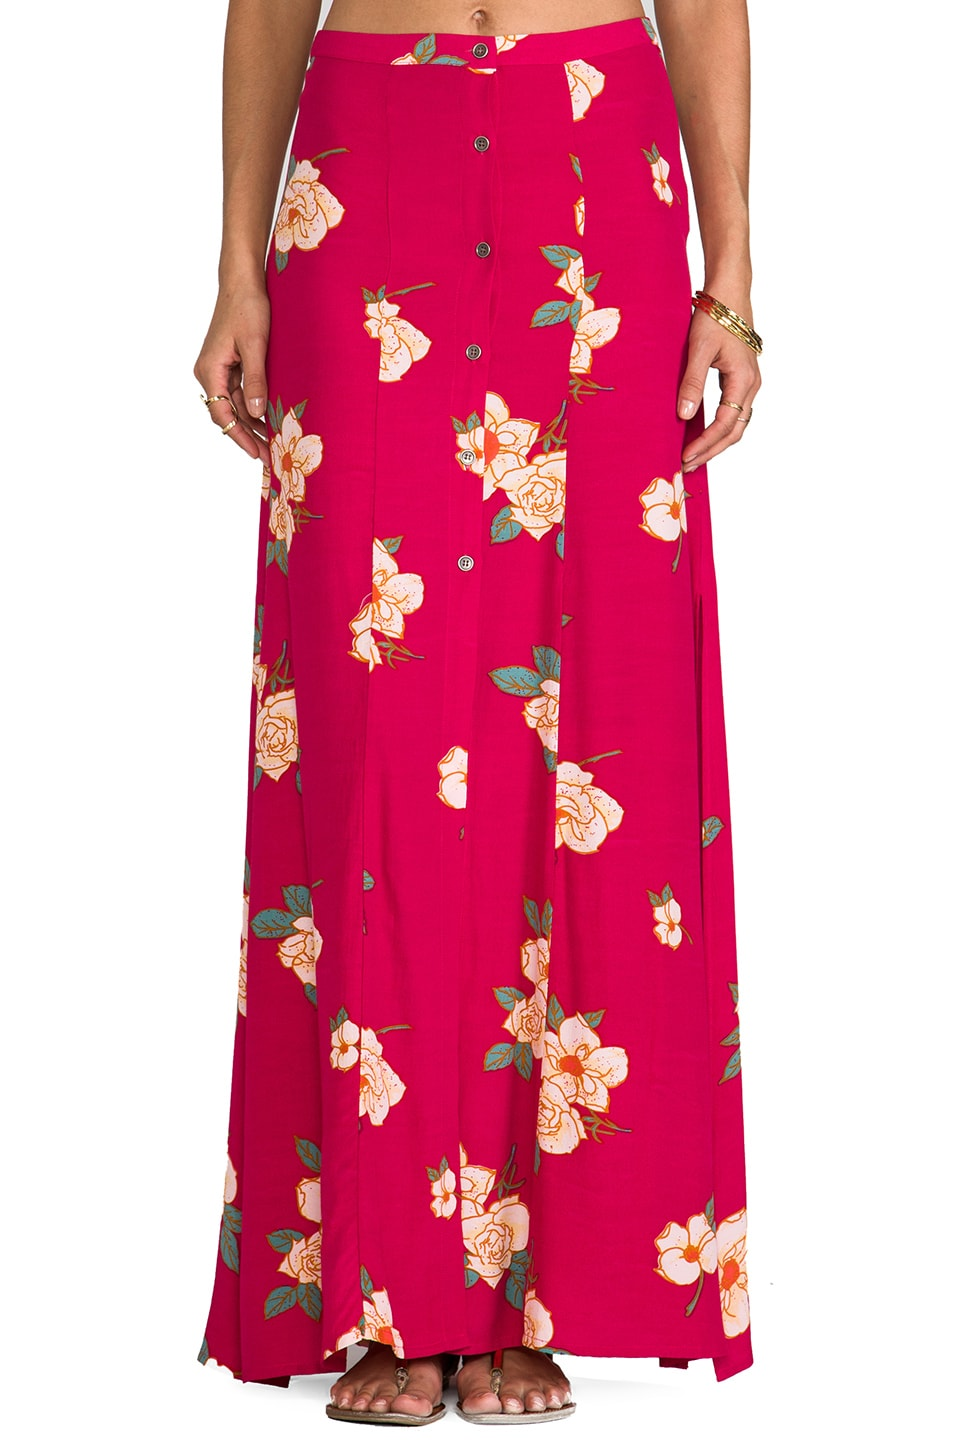 MINKPINK Flower Effect Maxi Skirt in Multi